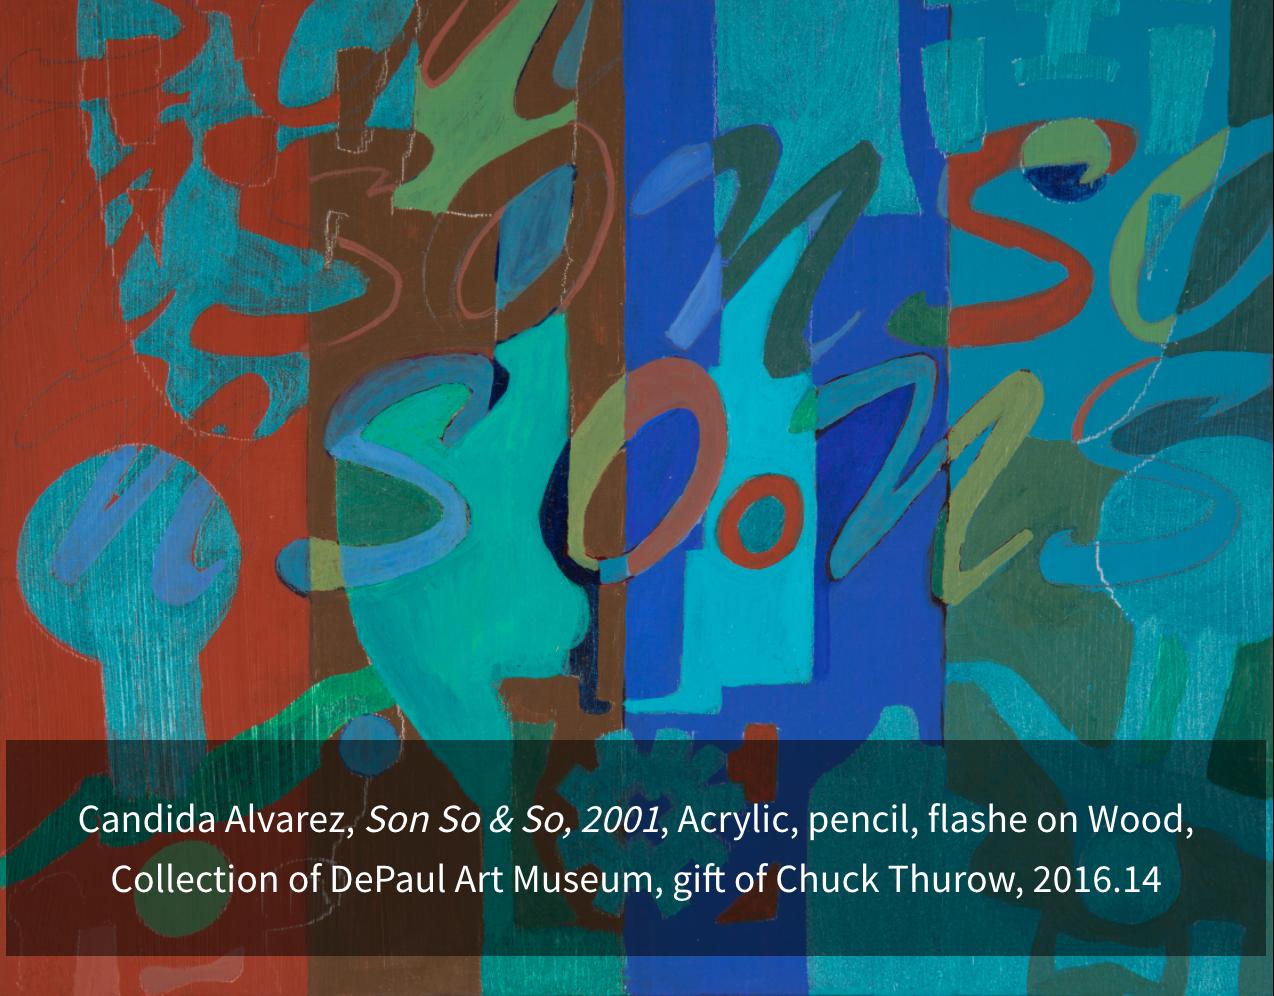 Alvarez, Candida. Son So & So. 2001. Acrylic, pencil, Flashe on wood. Collection of DePaul Art Museum, gift of Chuck Thurow 2016.14.